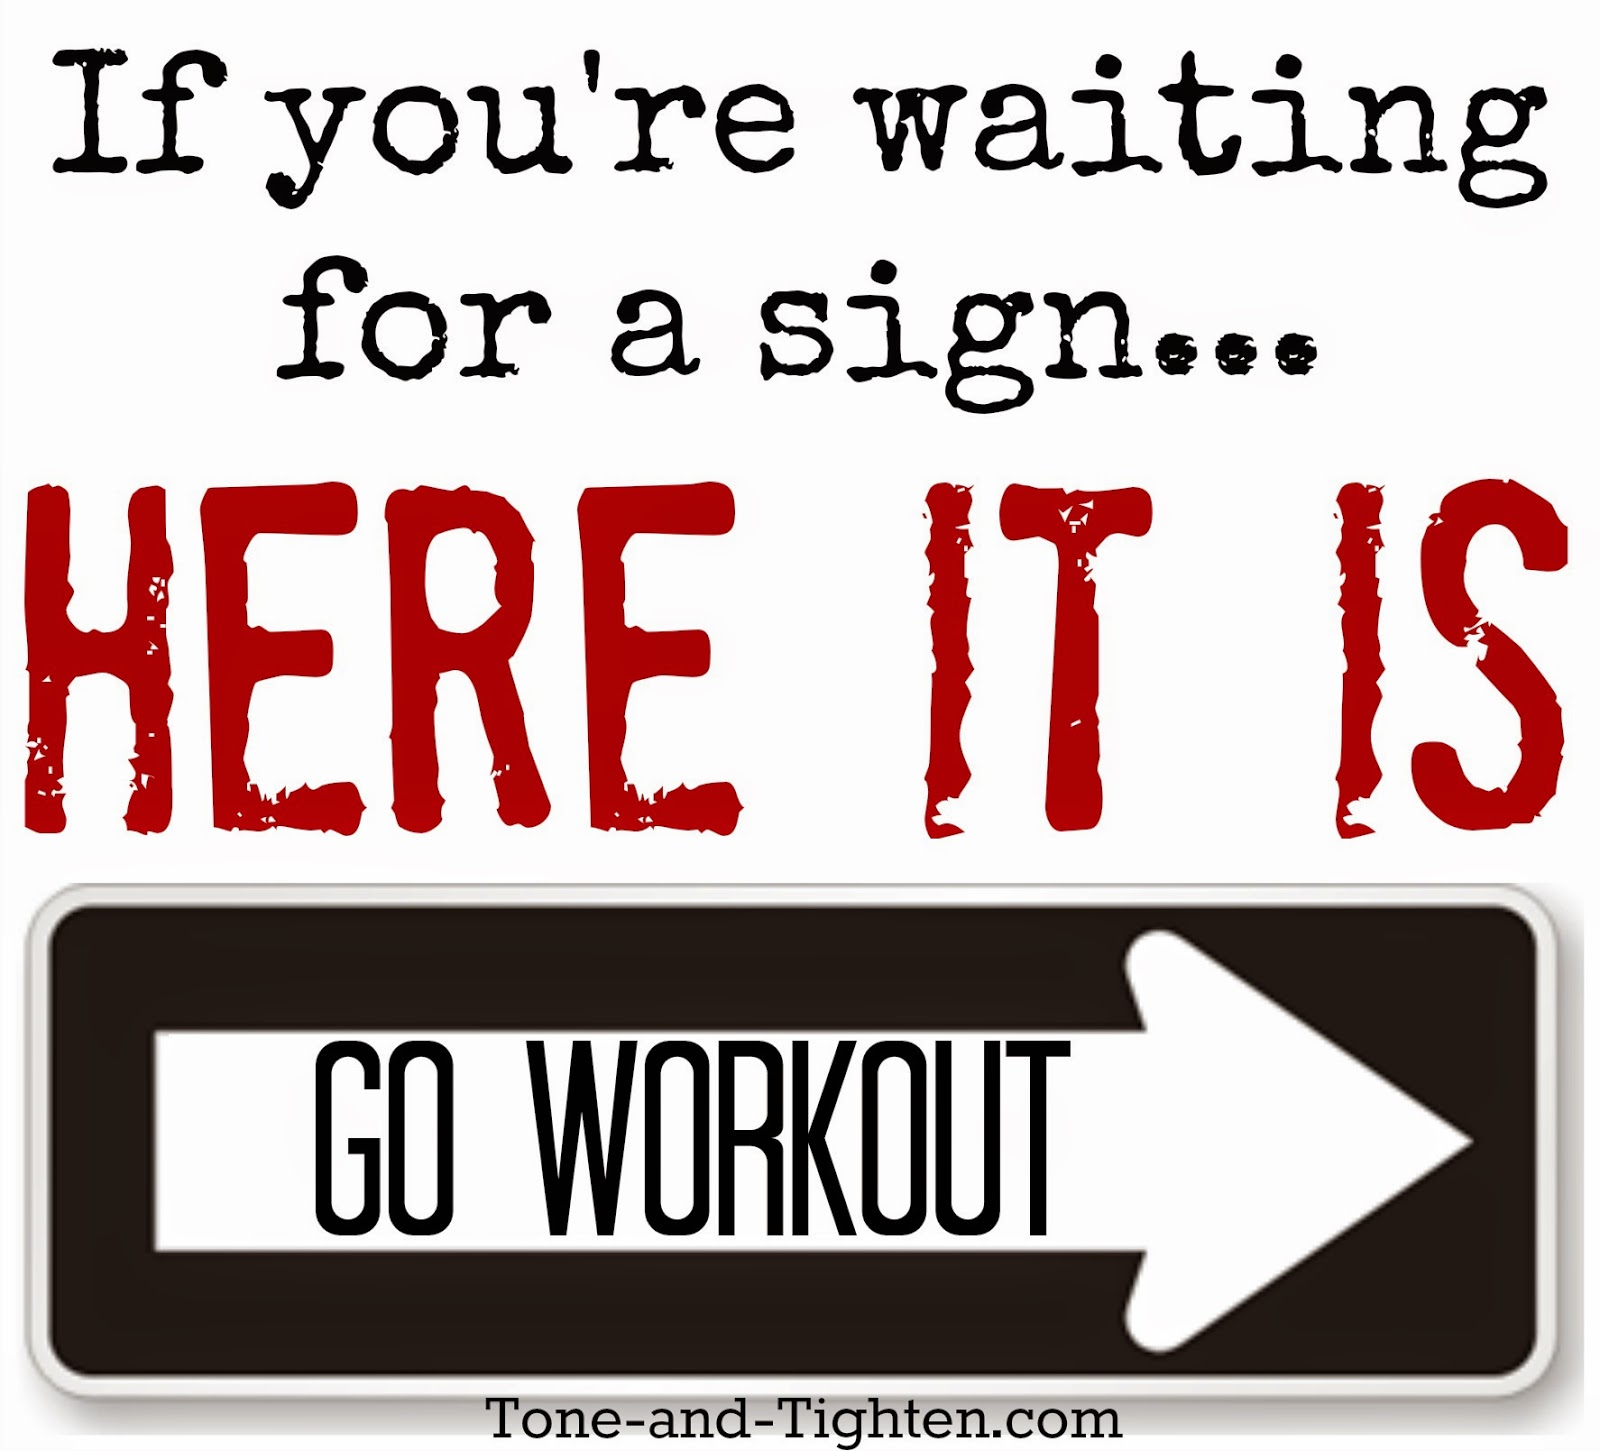 44 Inspirational Workout Quotes With Pictures To Getting: After Christmas Workout Quotes. QuotesGram